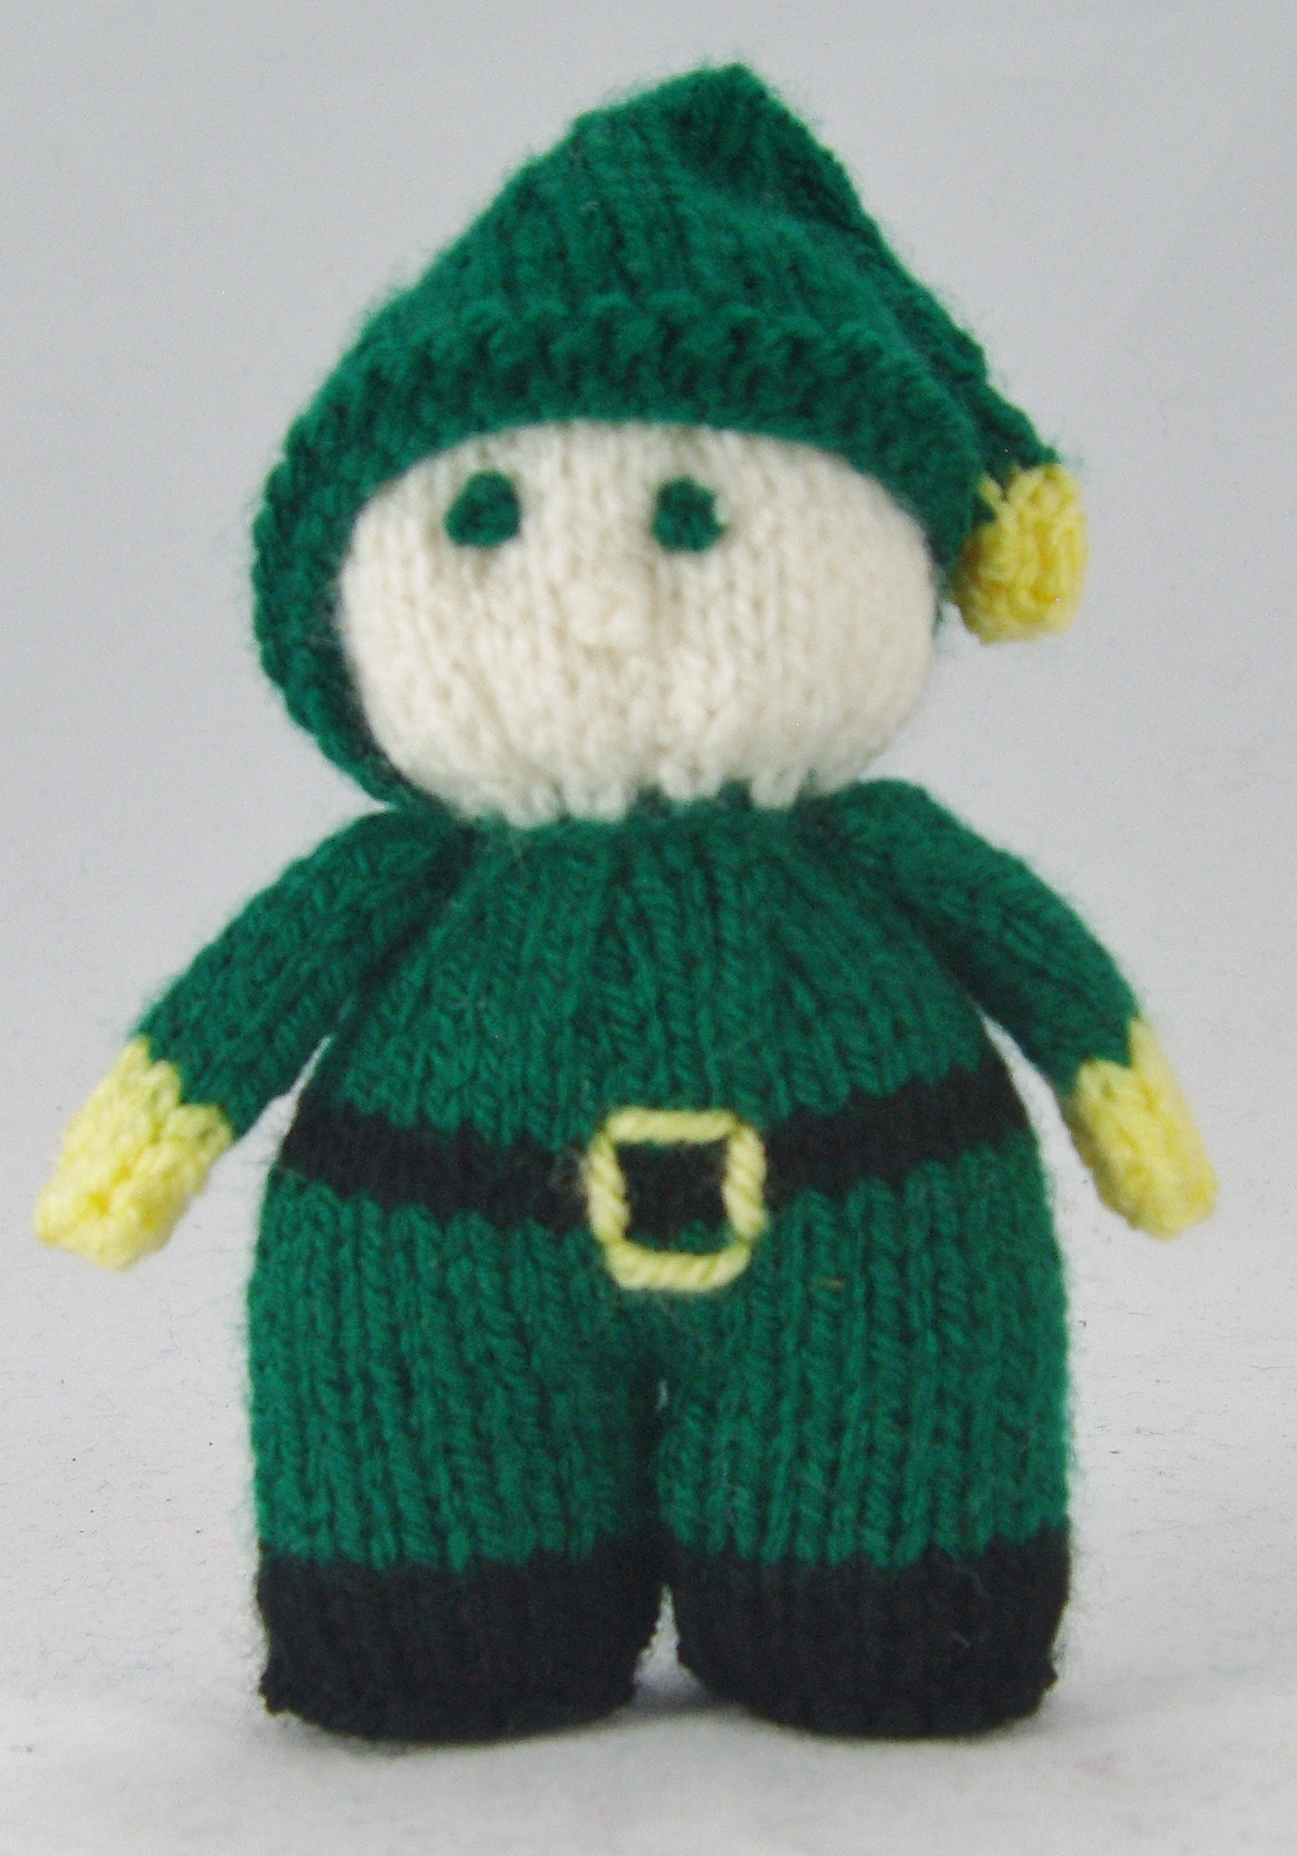 Mini Knitted Christmas Characters Knitting Pattern ...